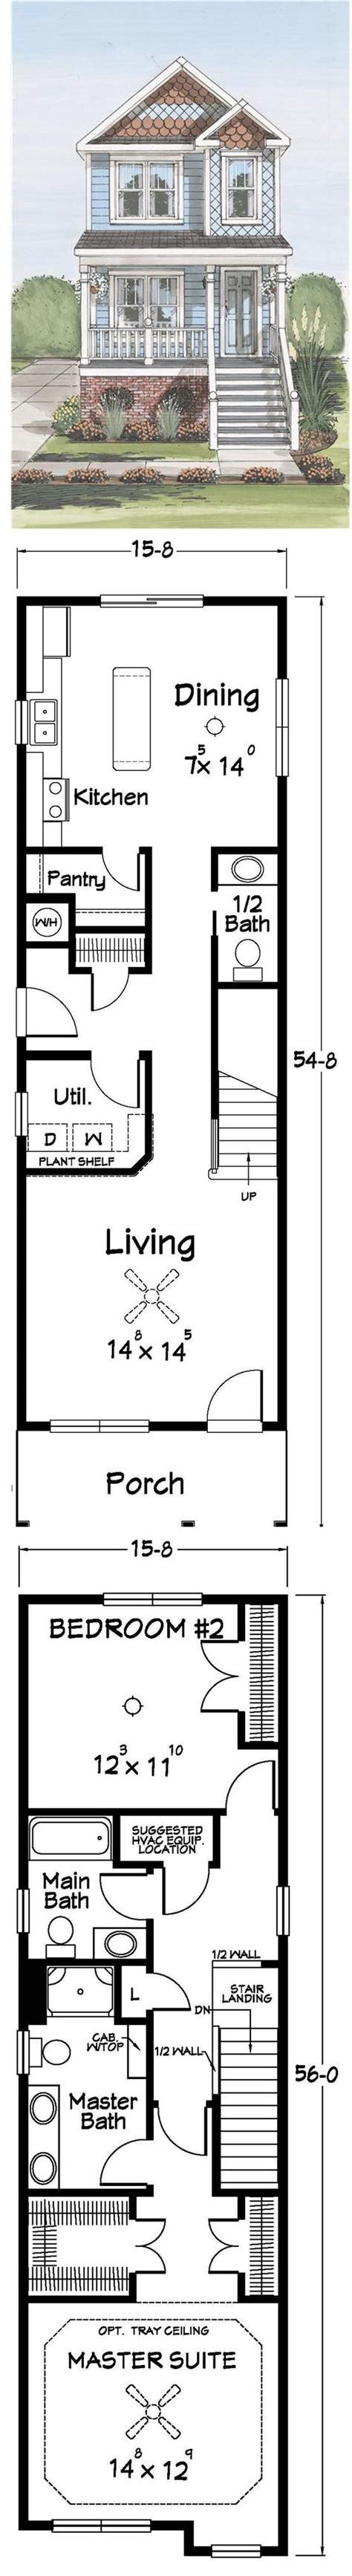 narrow house floor plans narrow house plans woodworking projects plans